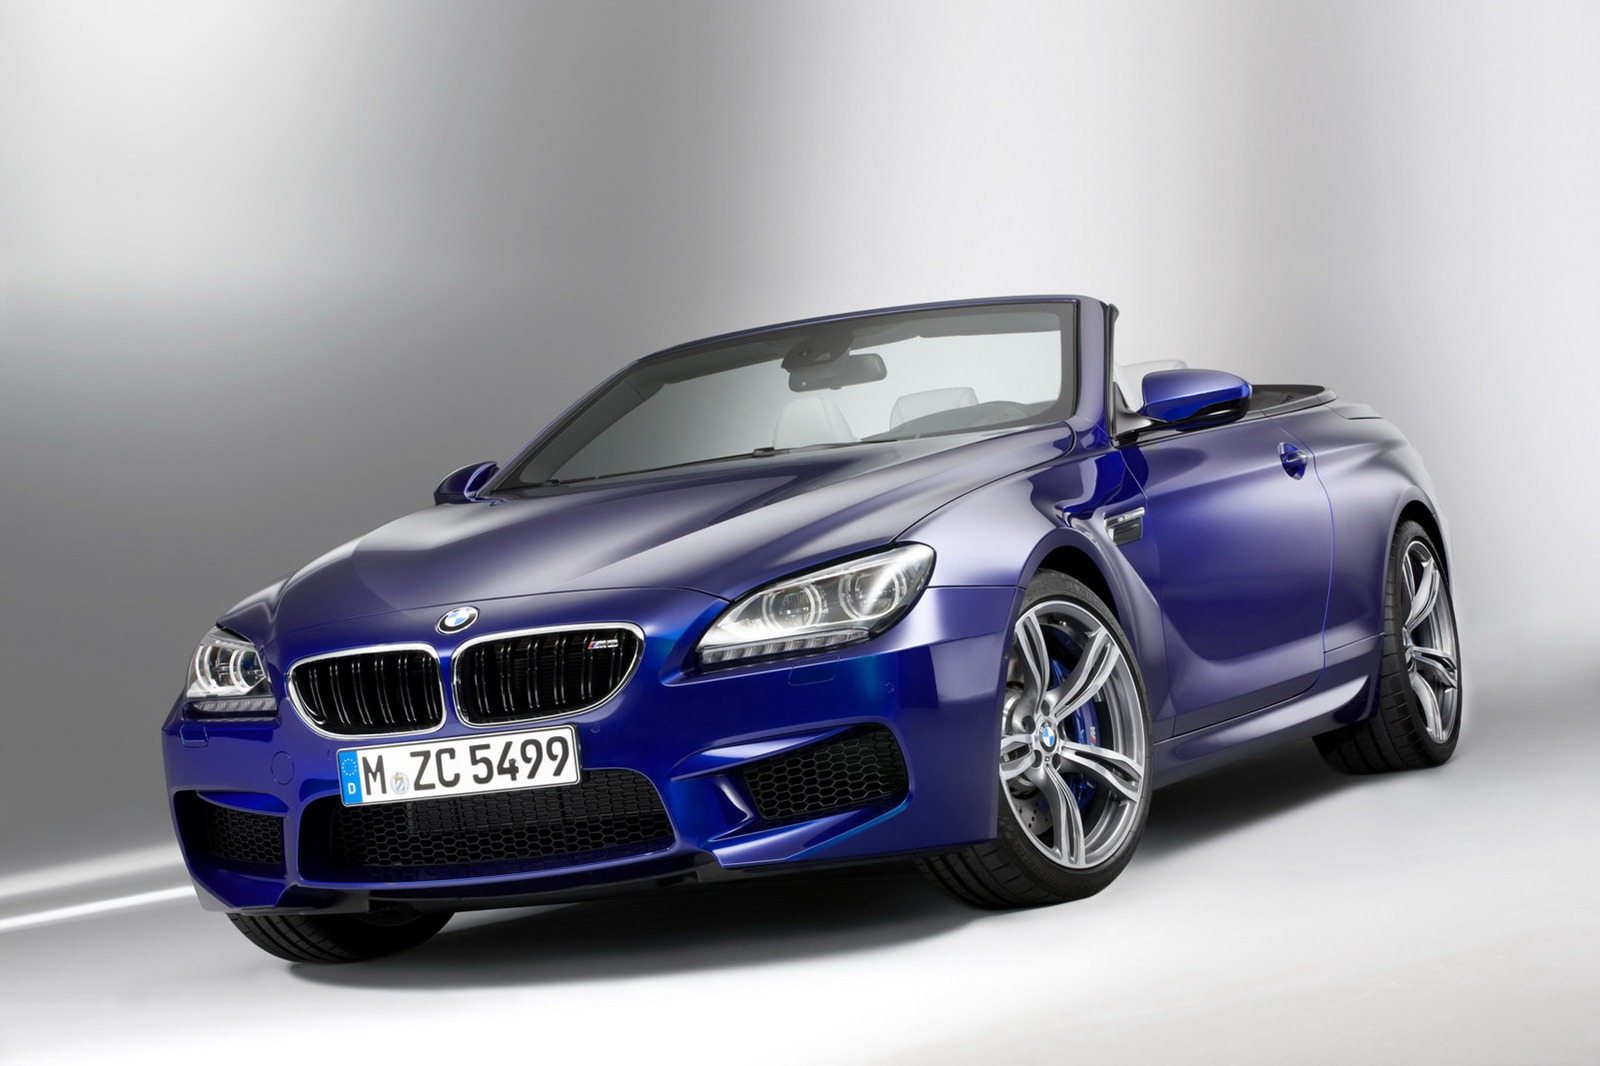 2013 BMW M6 Coupe and Convertible with 560HP Bi Turbo V8